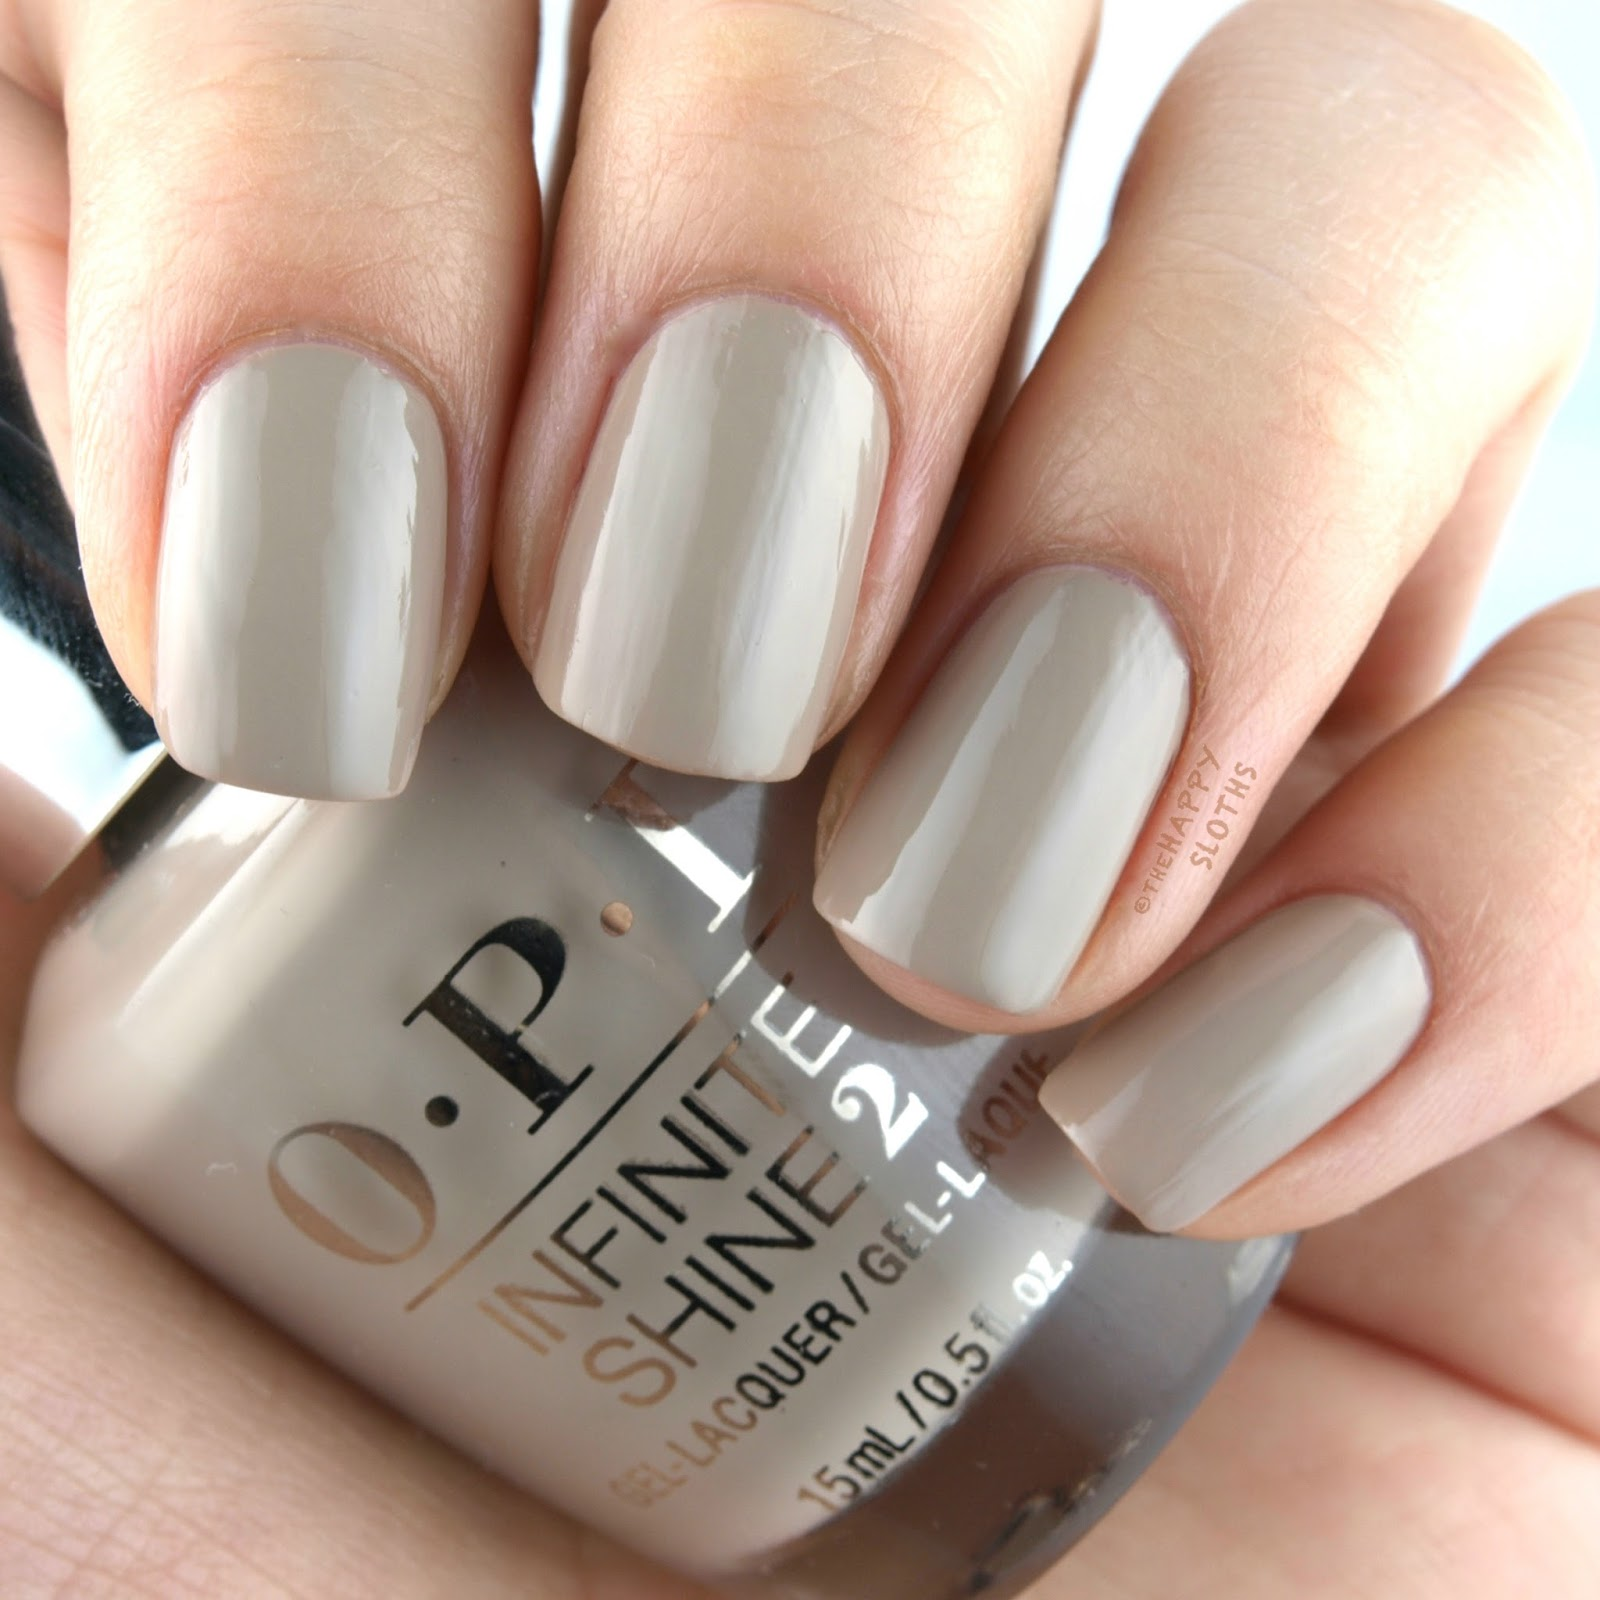 OPI Fiji Coconuts Over OPI Swatches and Review